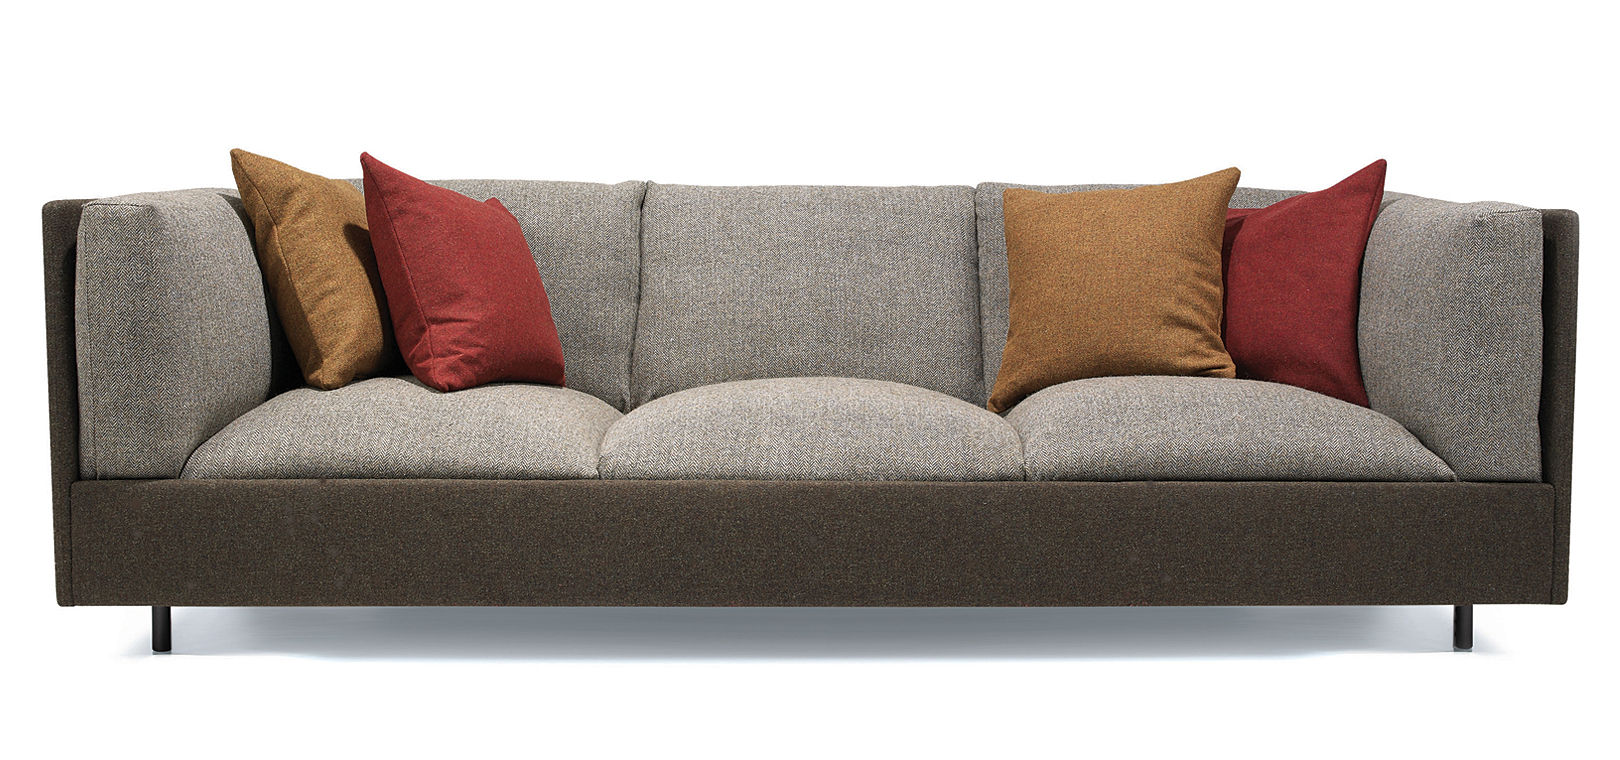 Photos of add new style to your home with contemporary sofas uafyatb